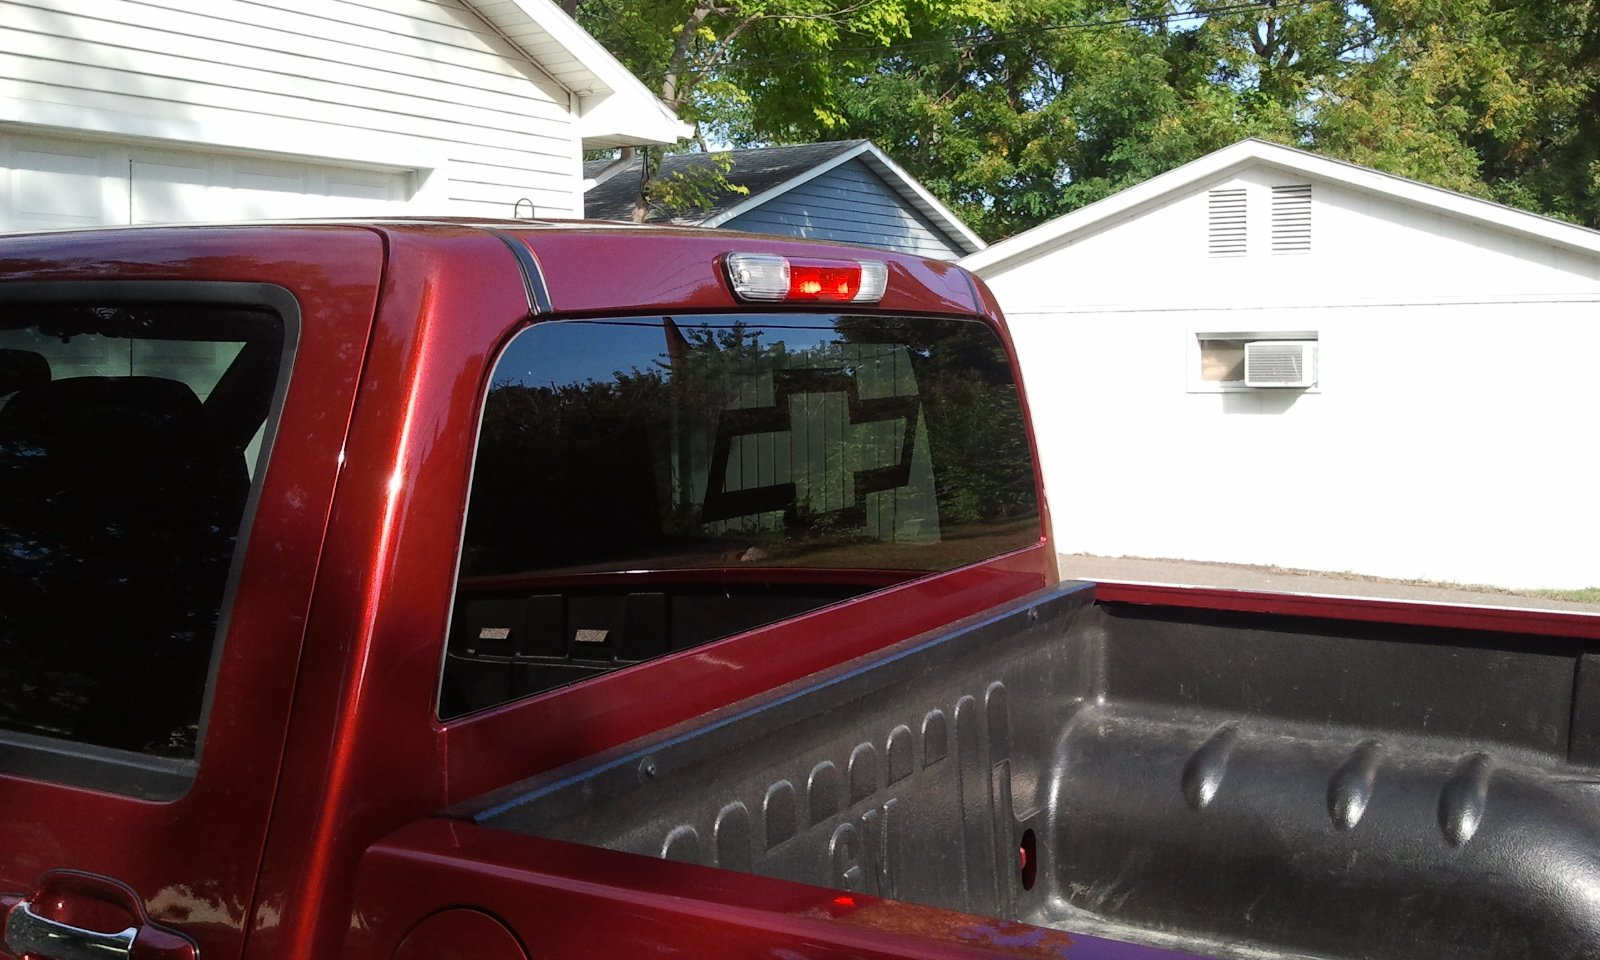 Chevy Bowtie Decal Chevrolet Colorado  GMC Canyon Forum - Chevy rear window decals trucks